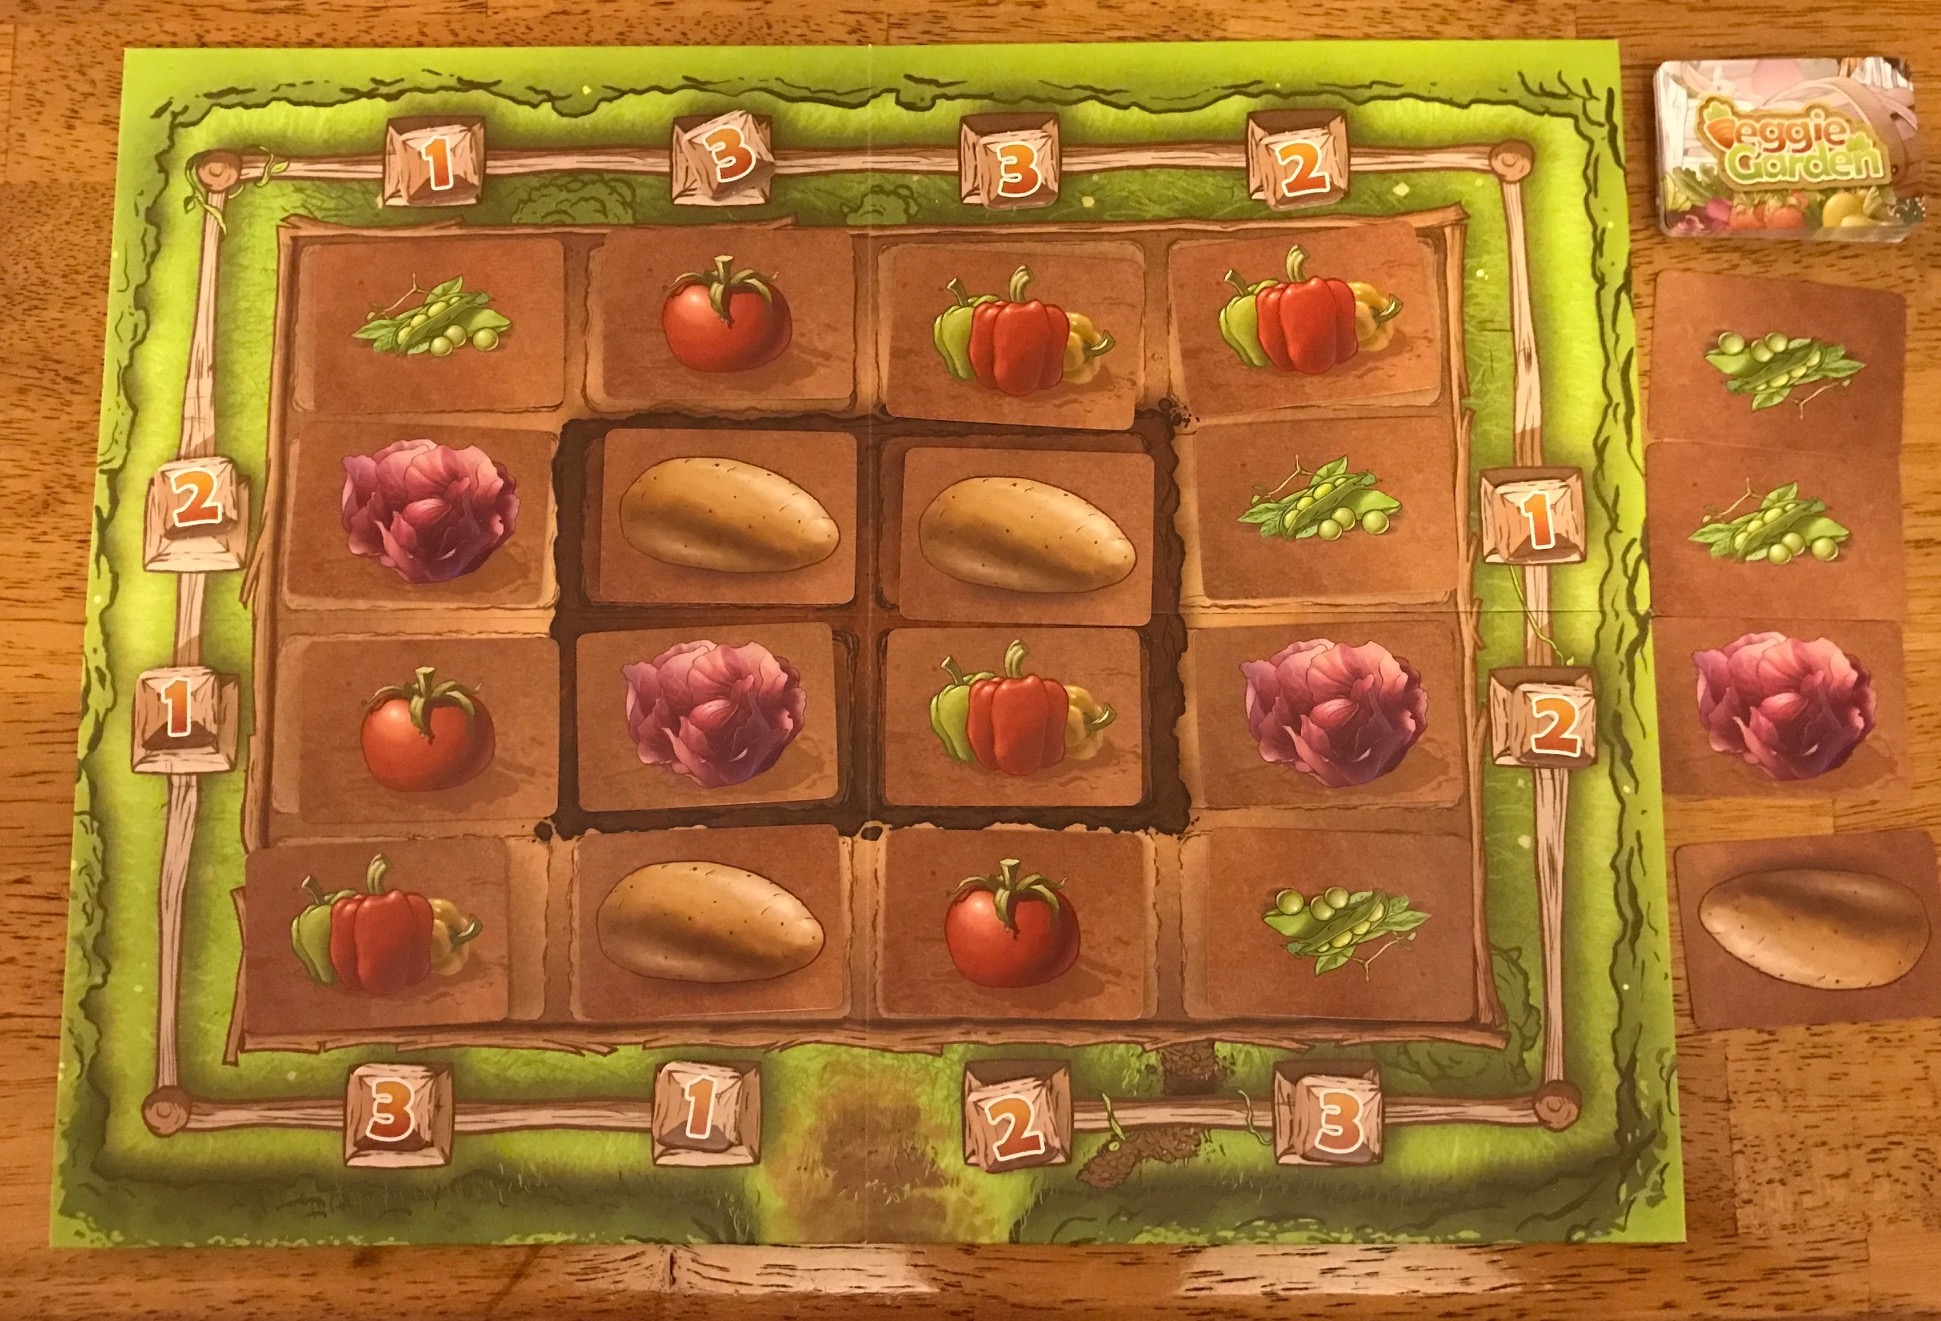 Veggie Garden (Game Review by Chris Wray) | The Opinionated Gamers